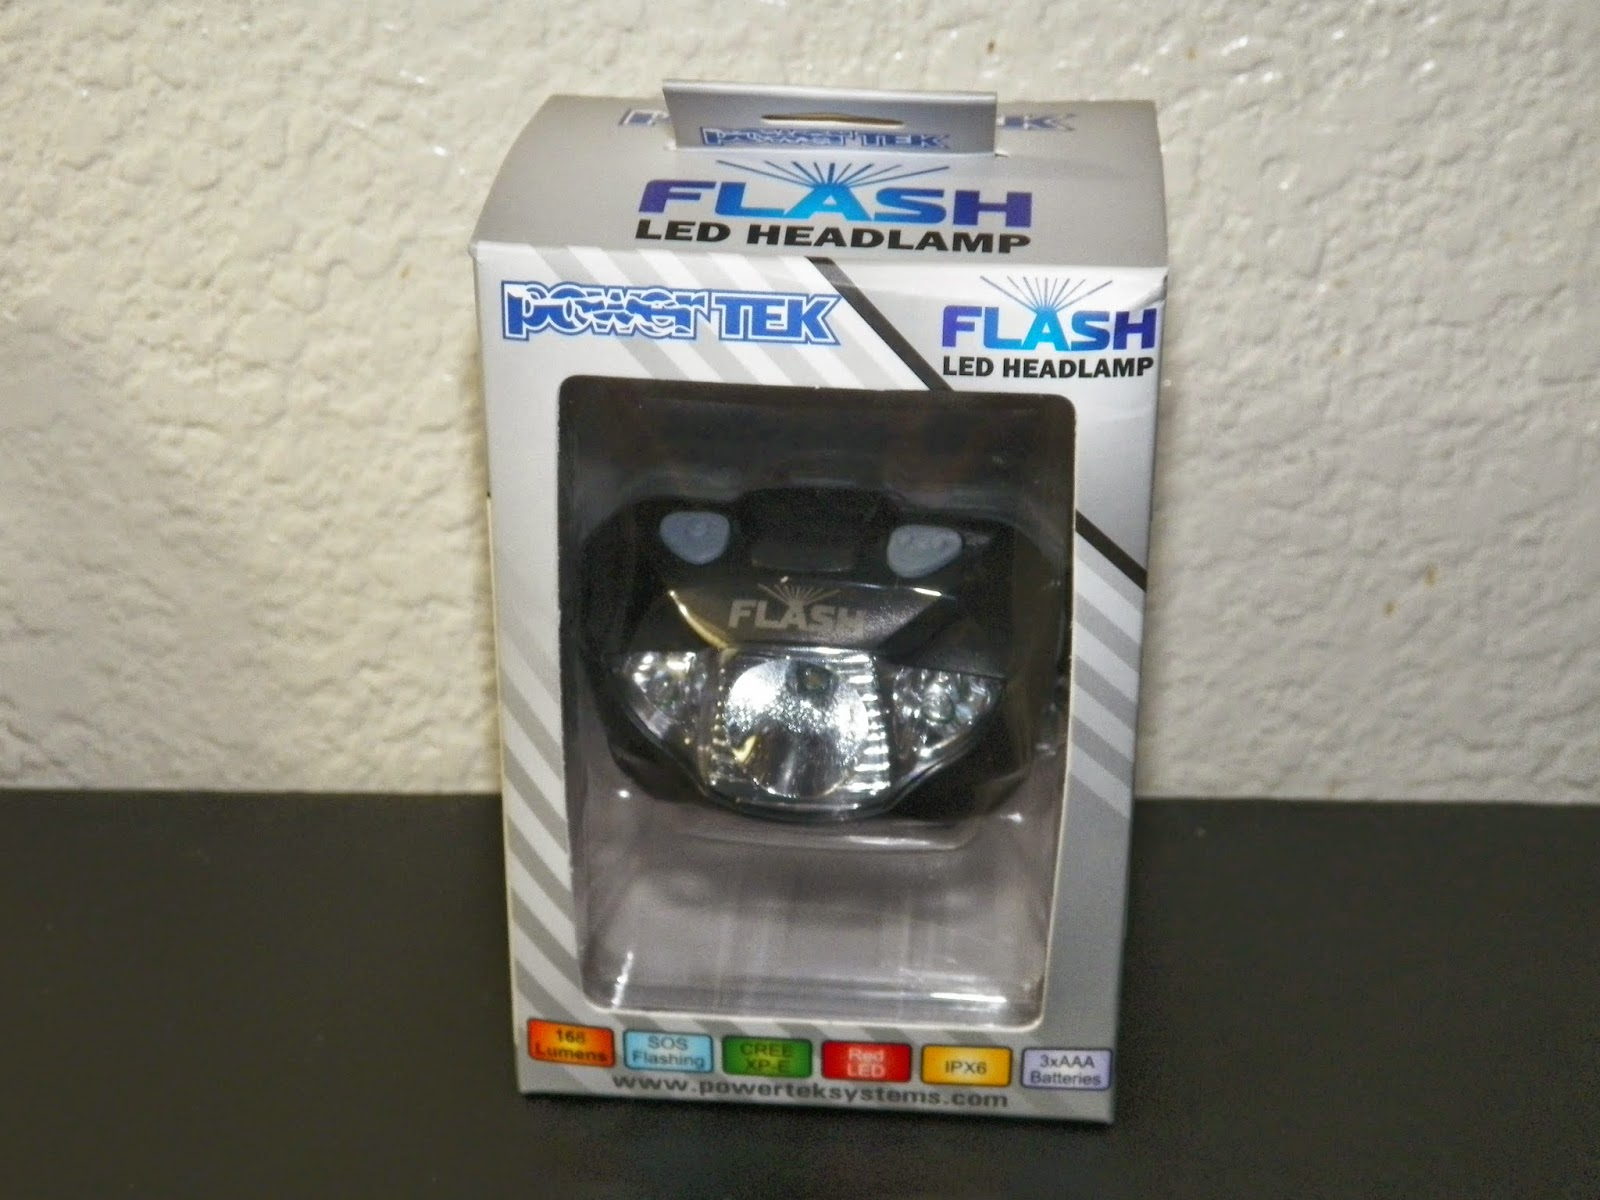 PowerTEKFlashHeadlamp.jpg